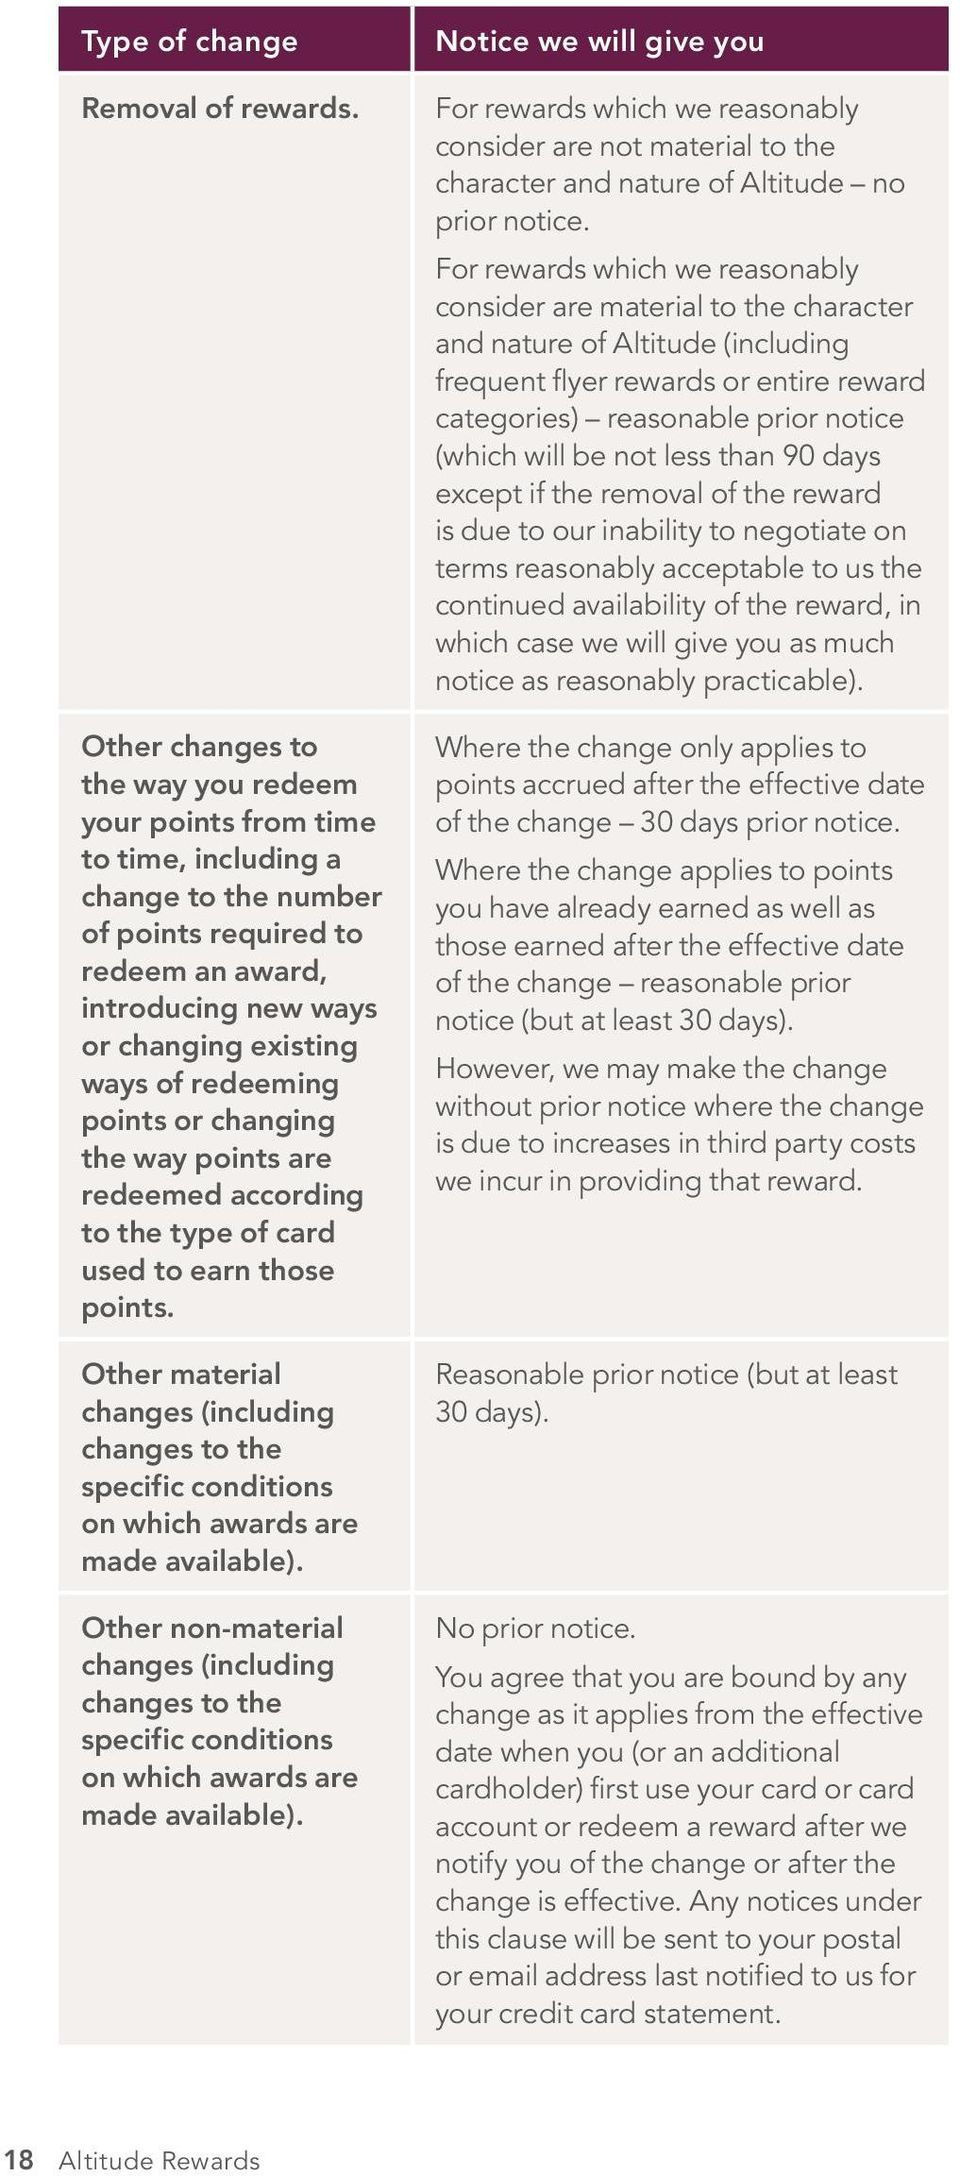 points or changing the way points are redeemed according to the type of card used to earn those points.